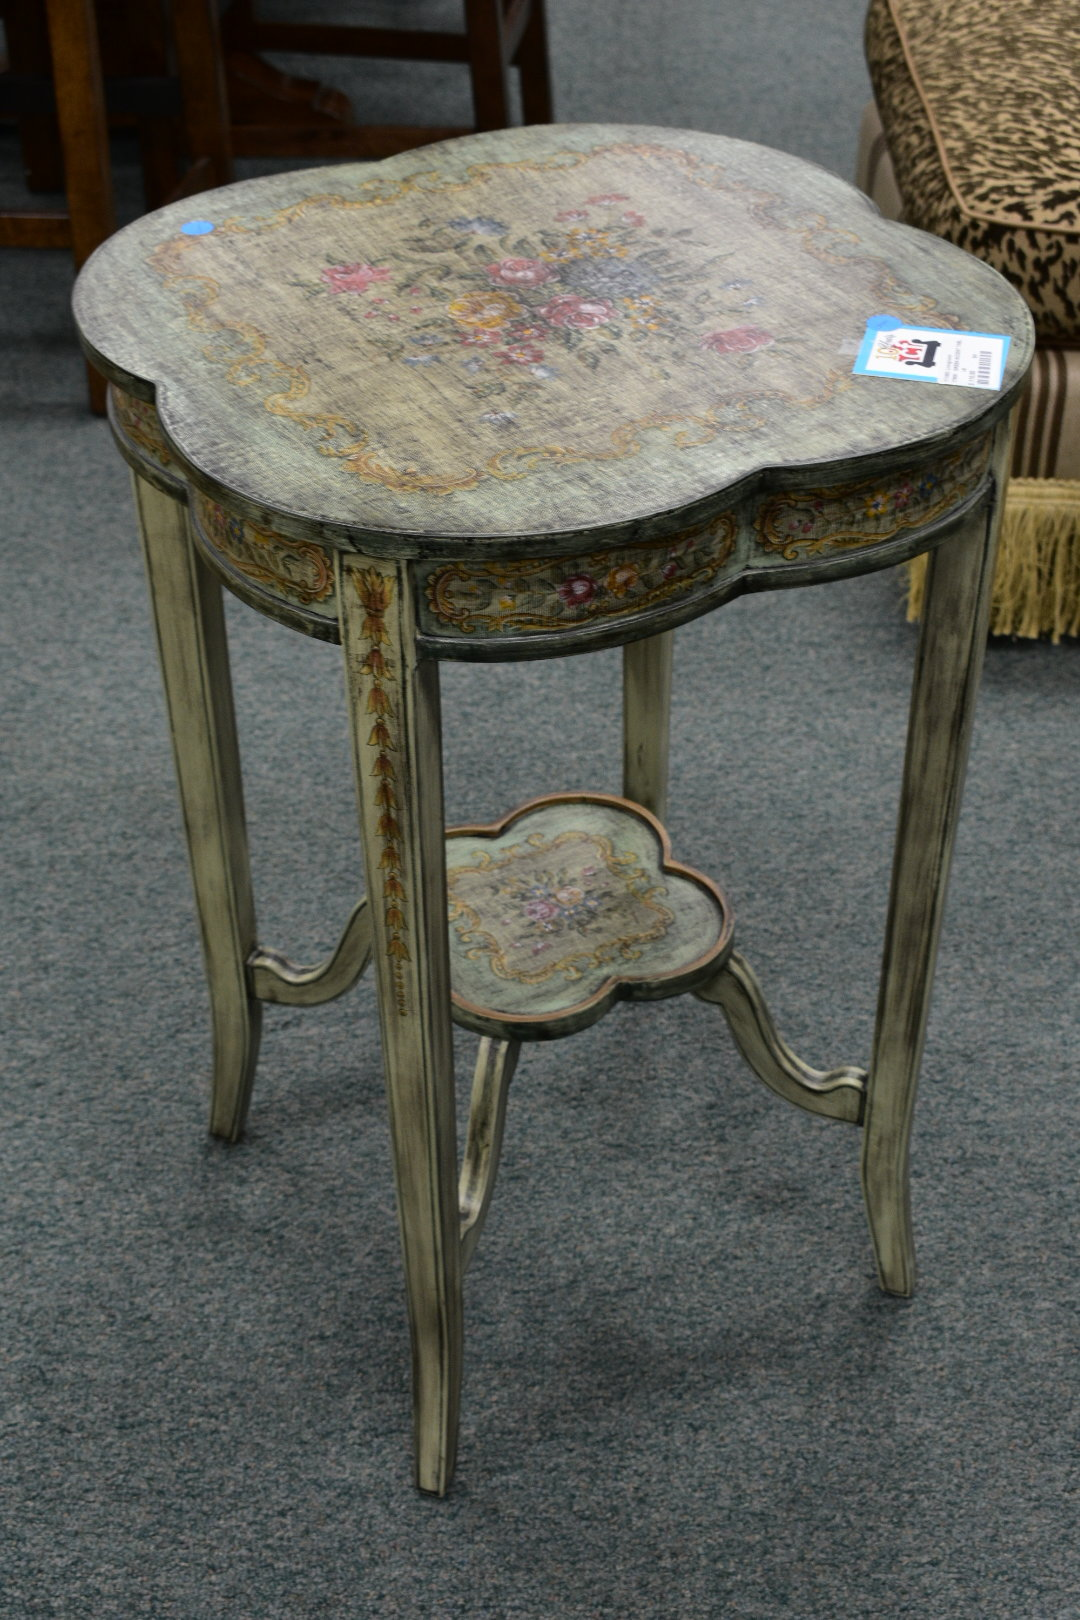 green accent table consign furniture dsc metal this attractive displays unique floral design that looks fabric unusual tables square trestle dining elegant lamps promotions